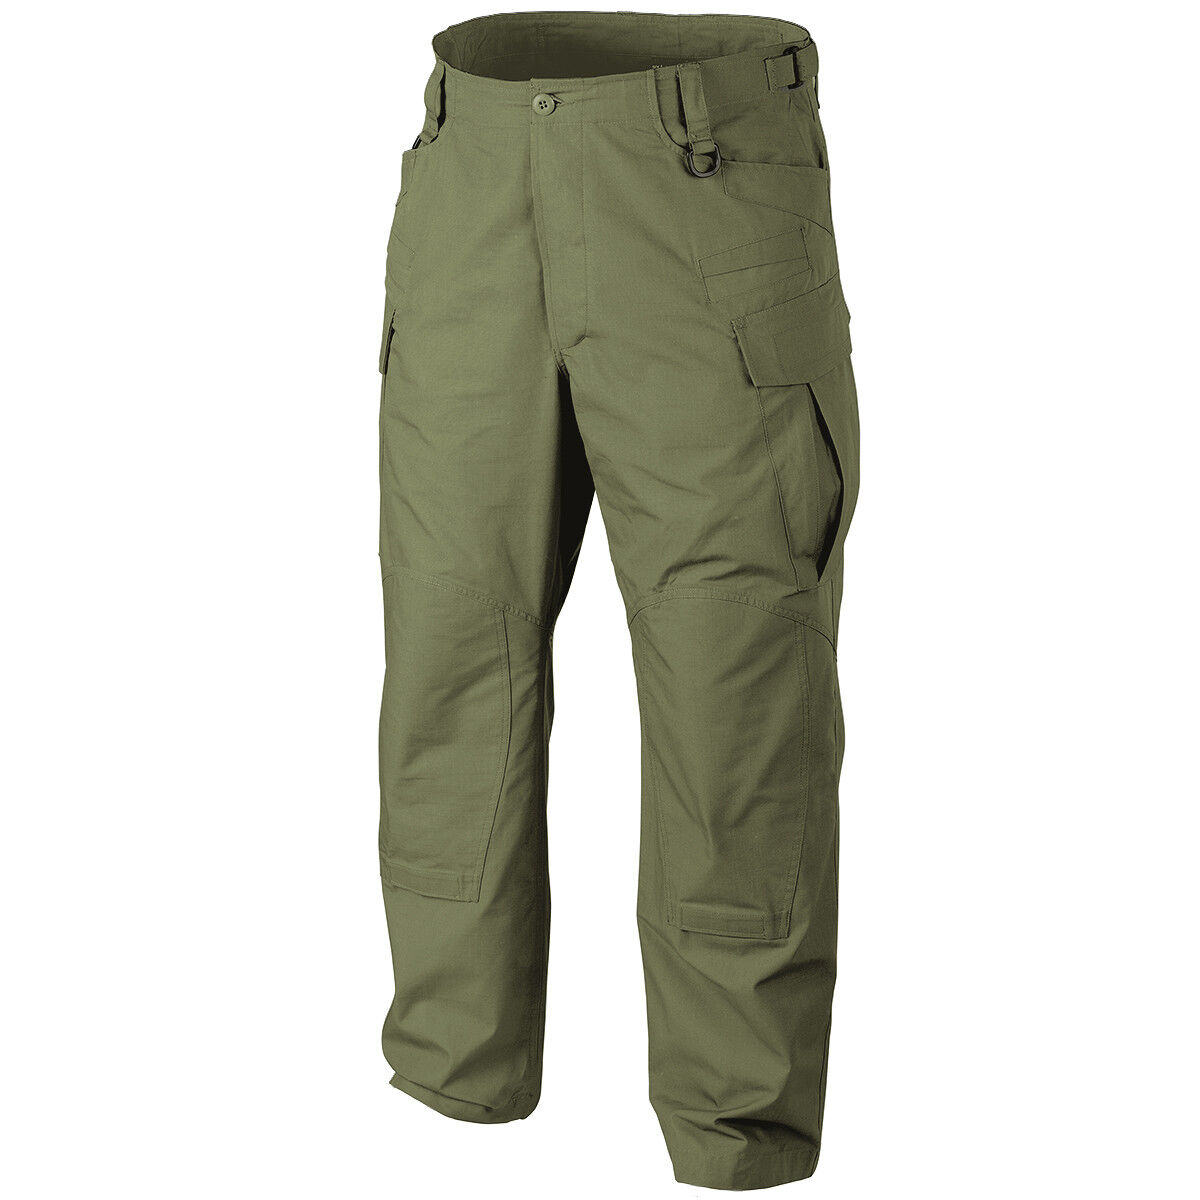 HELIKON TACTICAL SFU NEXT COMBAT TROUSERS MENS MILITARY ARMY PANTS OLIVE GREEN